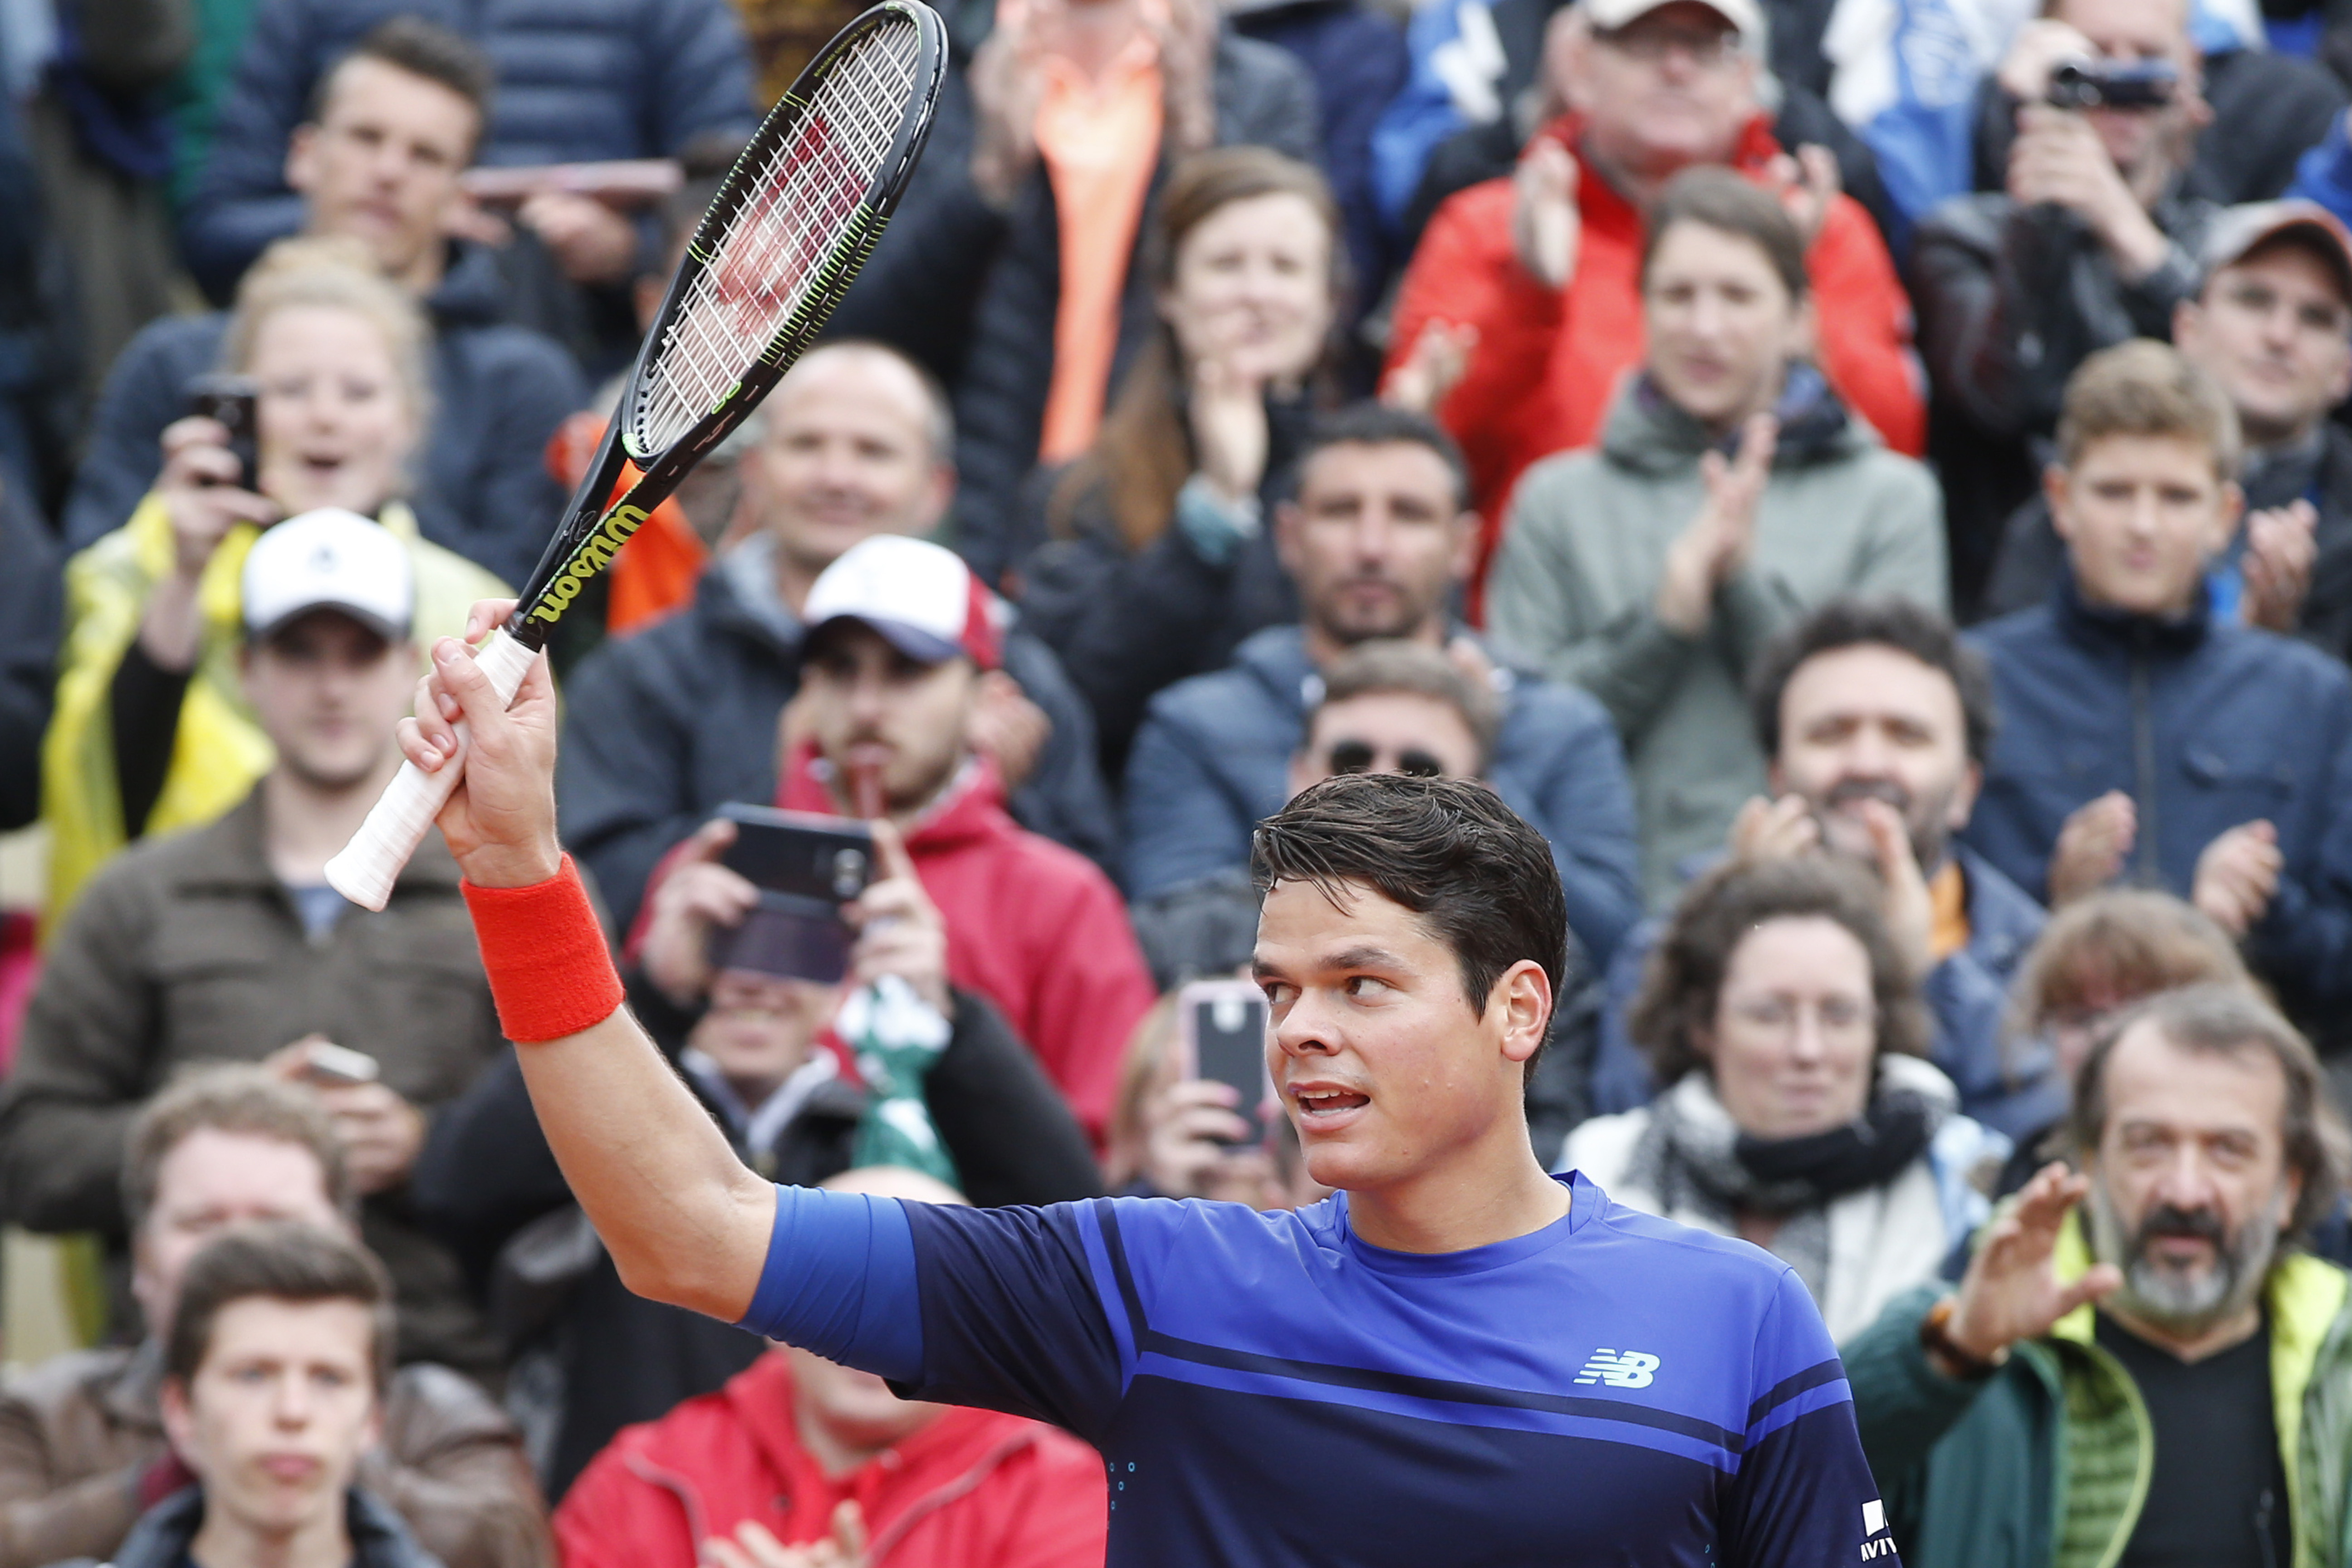 Canada's Milos Raonic greets spectators after winning his first round match of the French Open tennis tournament against Serbia's Janko Tipsarevic at Roland Garros stadium in Paris, France, Monday, May 23, 2016. (AP Photo/Alastair Grant)